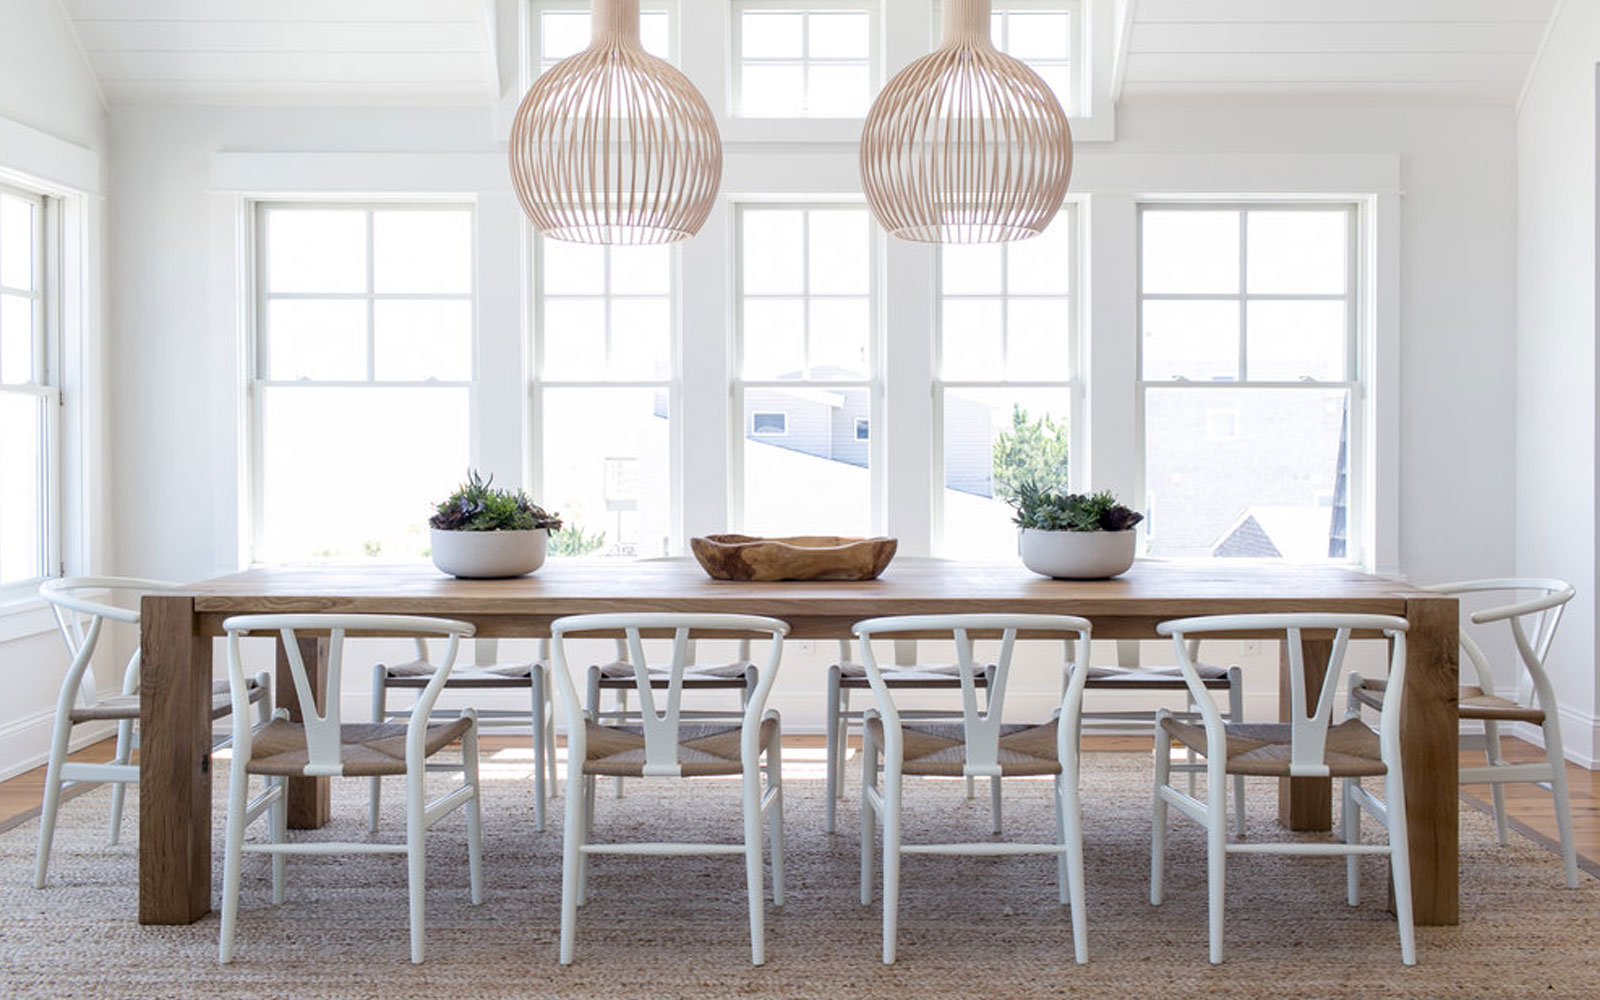 A Scandinavian Farmhouse style Dining space that is simple and modern. See more on The Fresh Exchange.